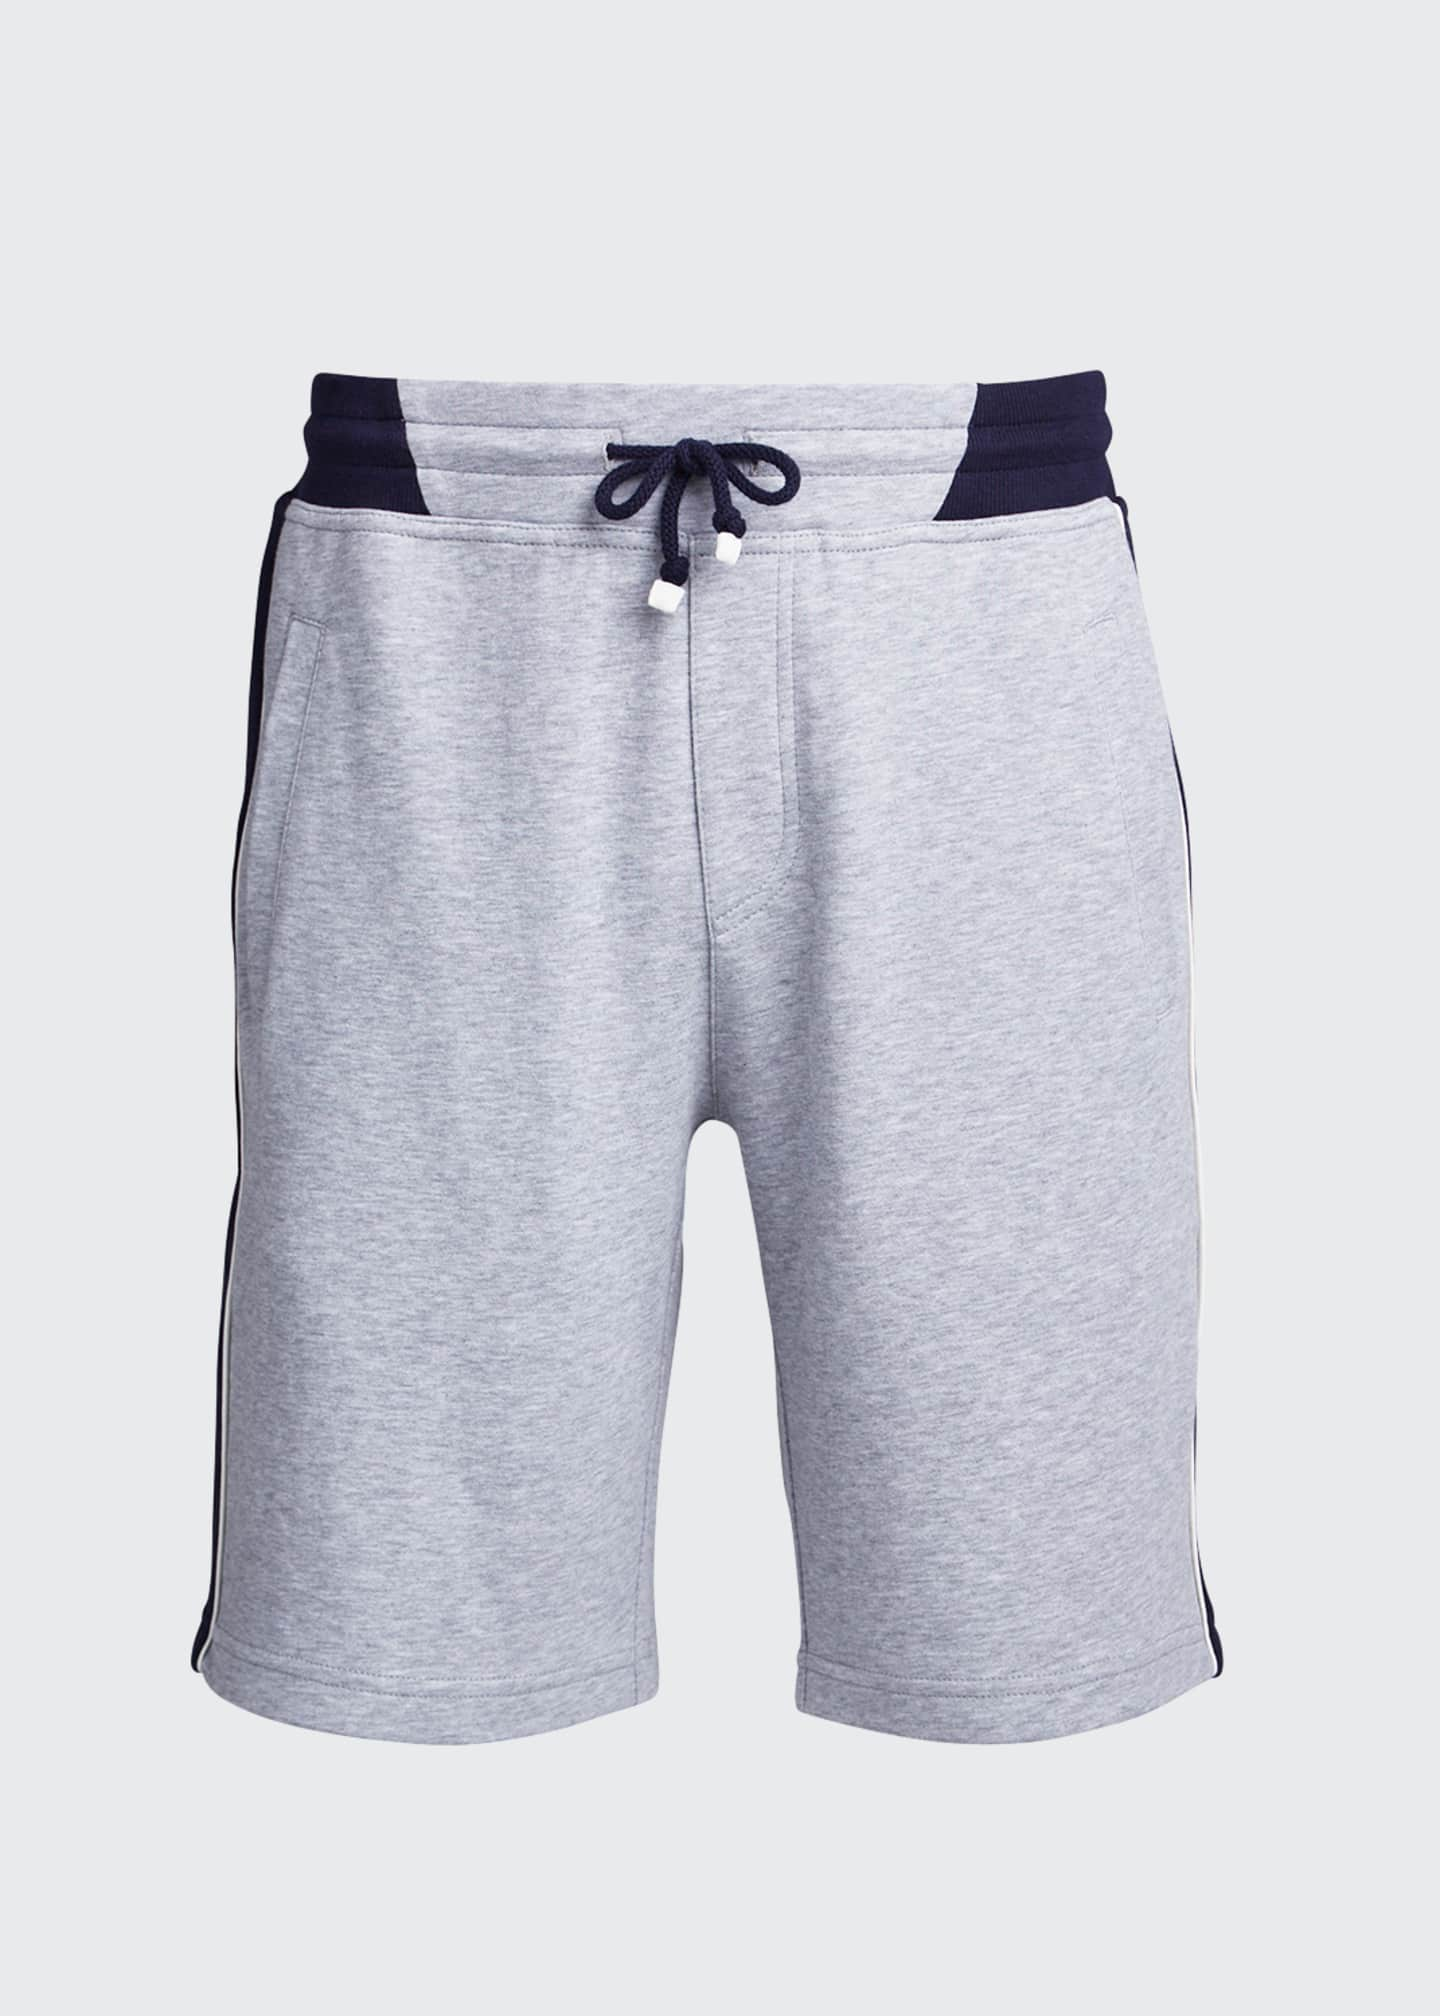 Image 5 of 5: Men's Colorblock Knit Bermuda Shorts